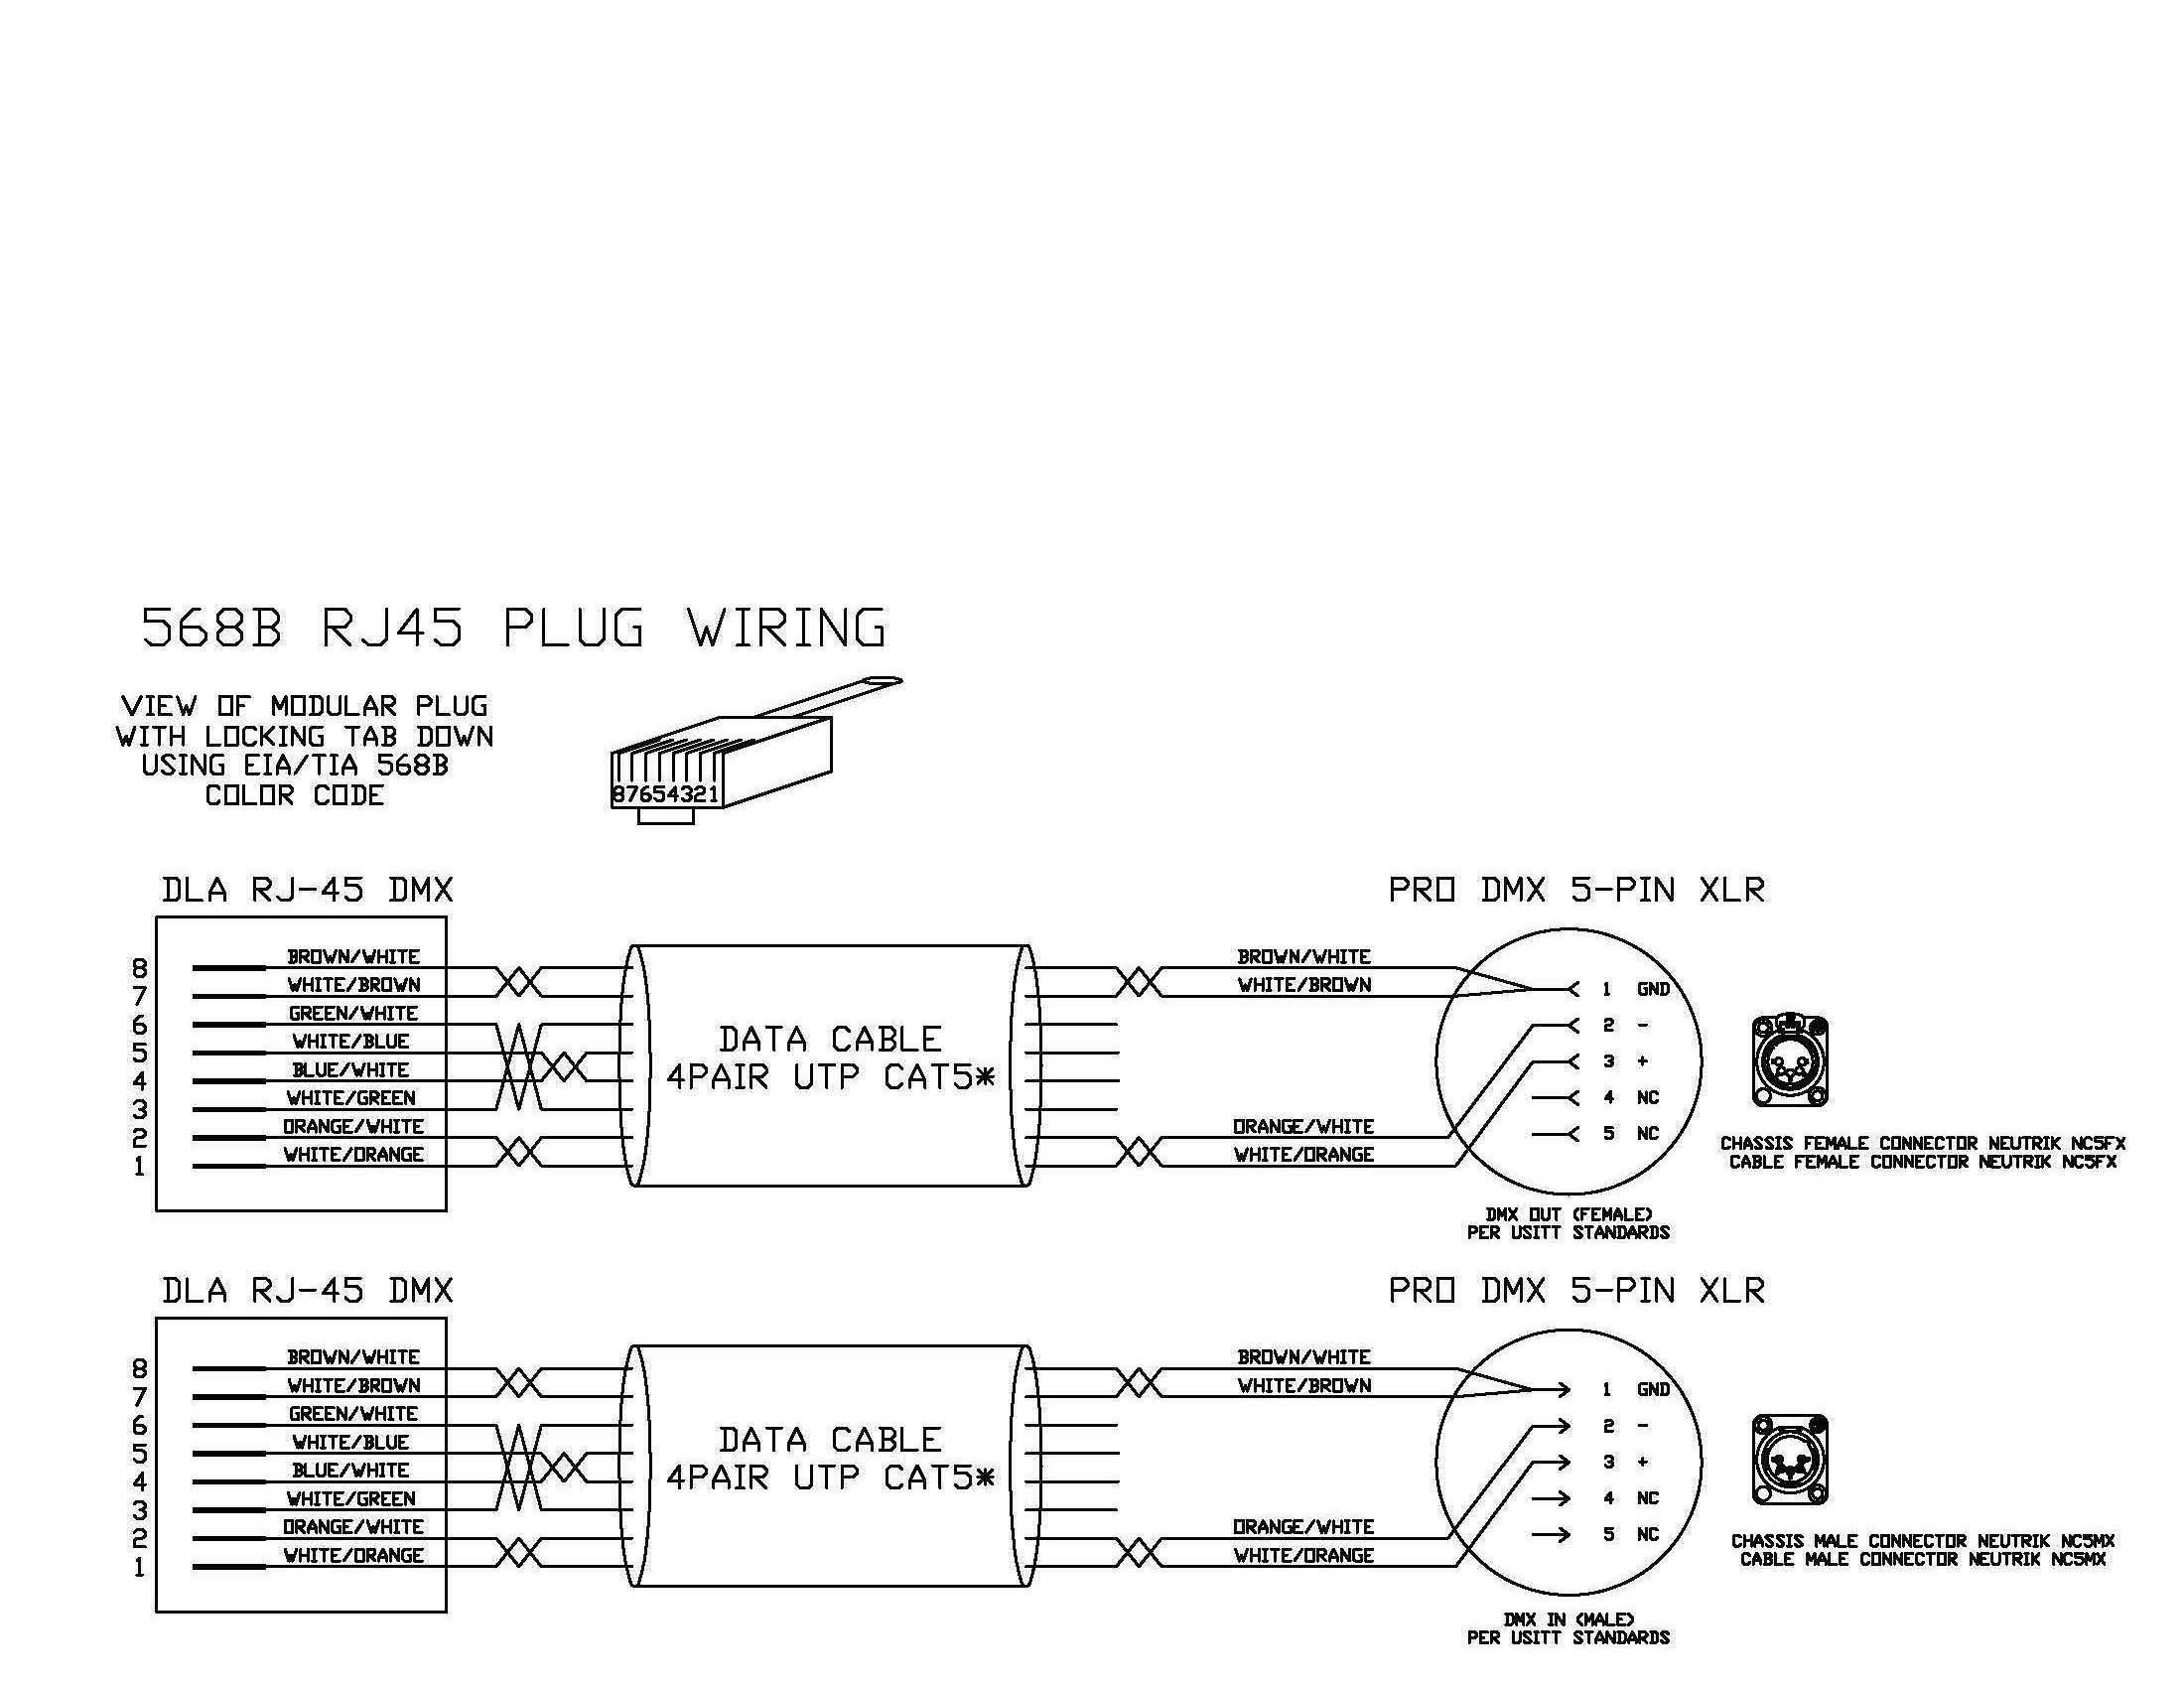 e975ddb6a839e630c21b81db05ca4fa6 xlr to rj45 wiring diagram xlr electrical wiring diagrams xlr cable wiring diagram at aneh.co